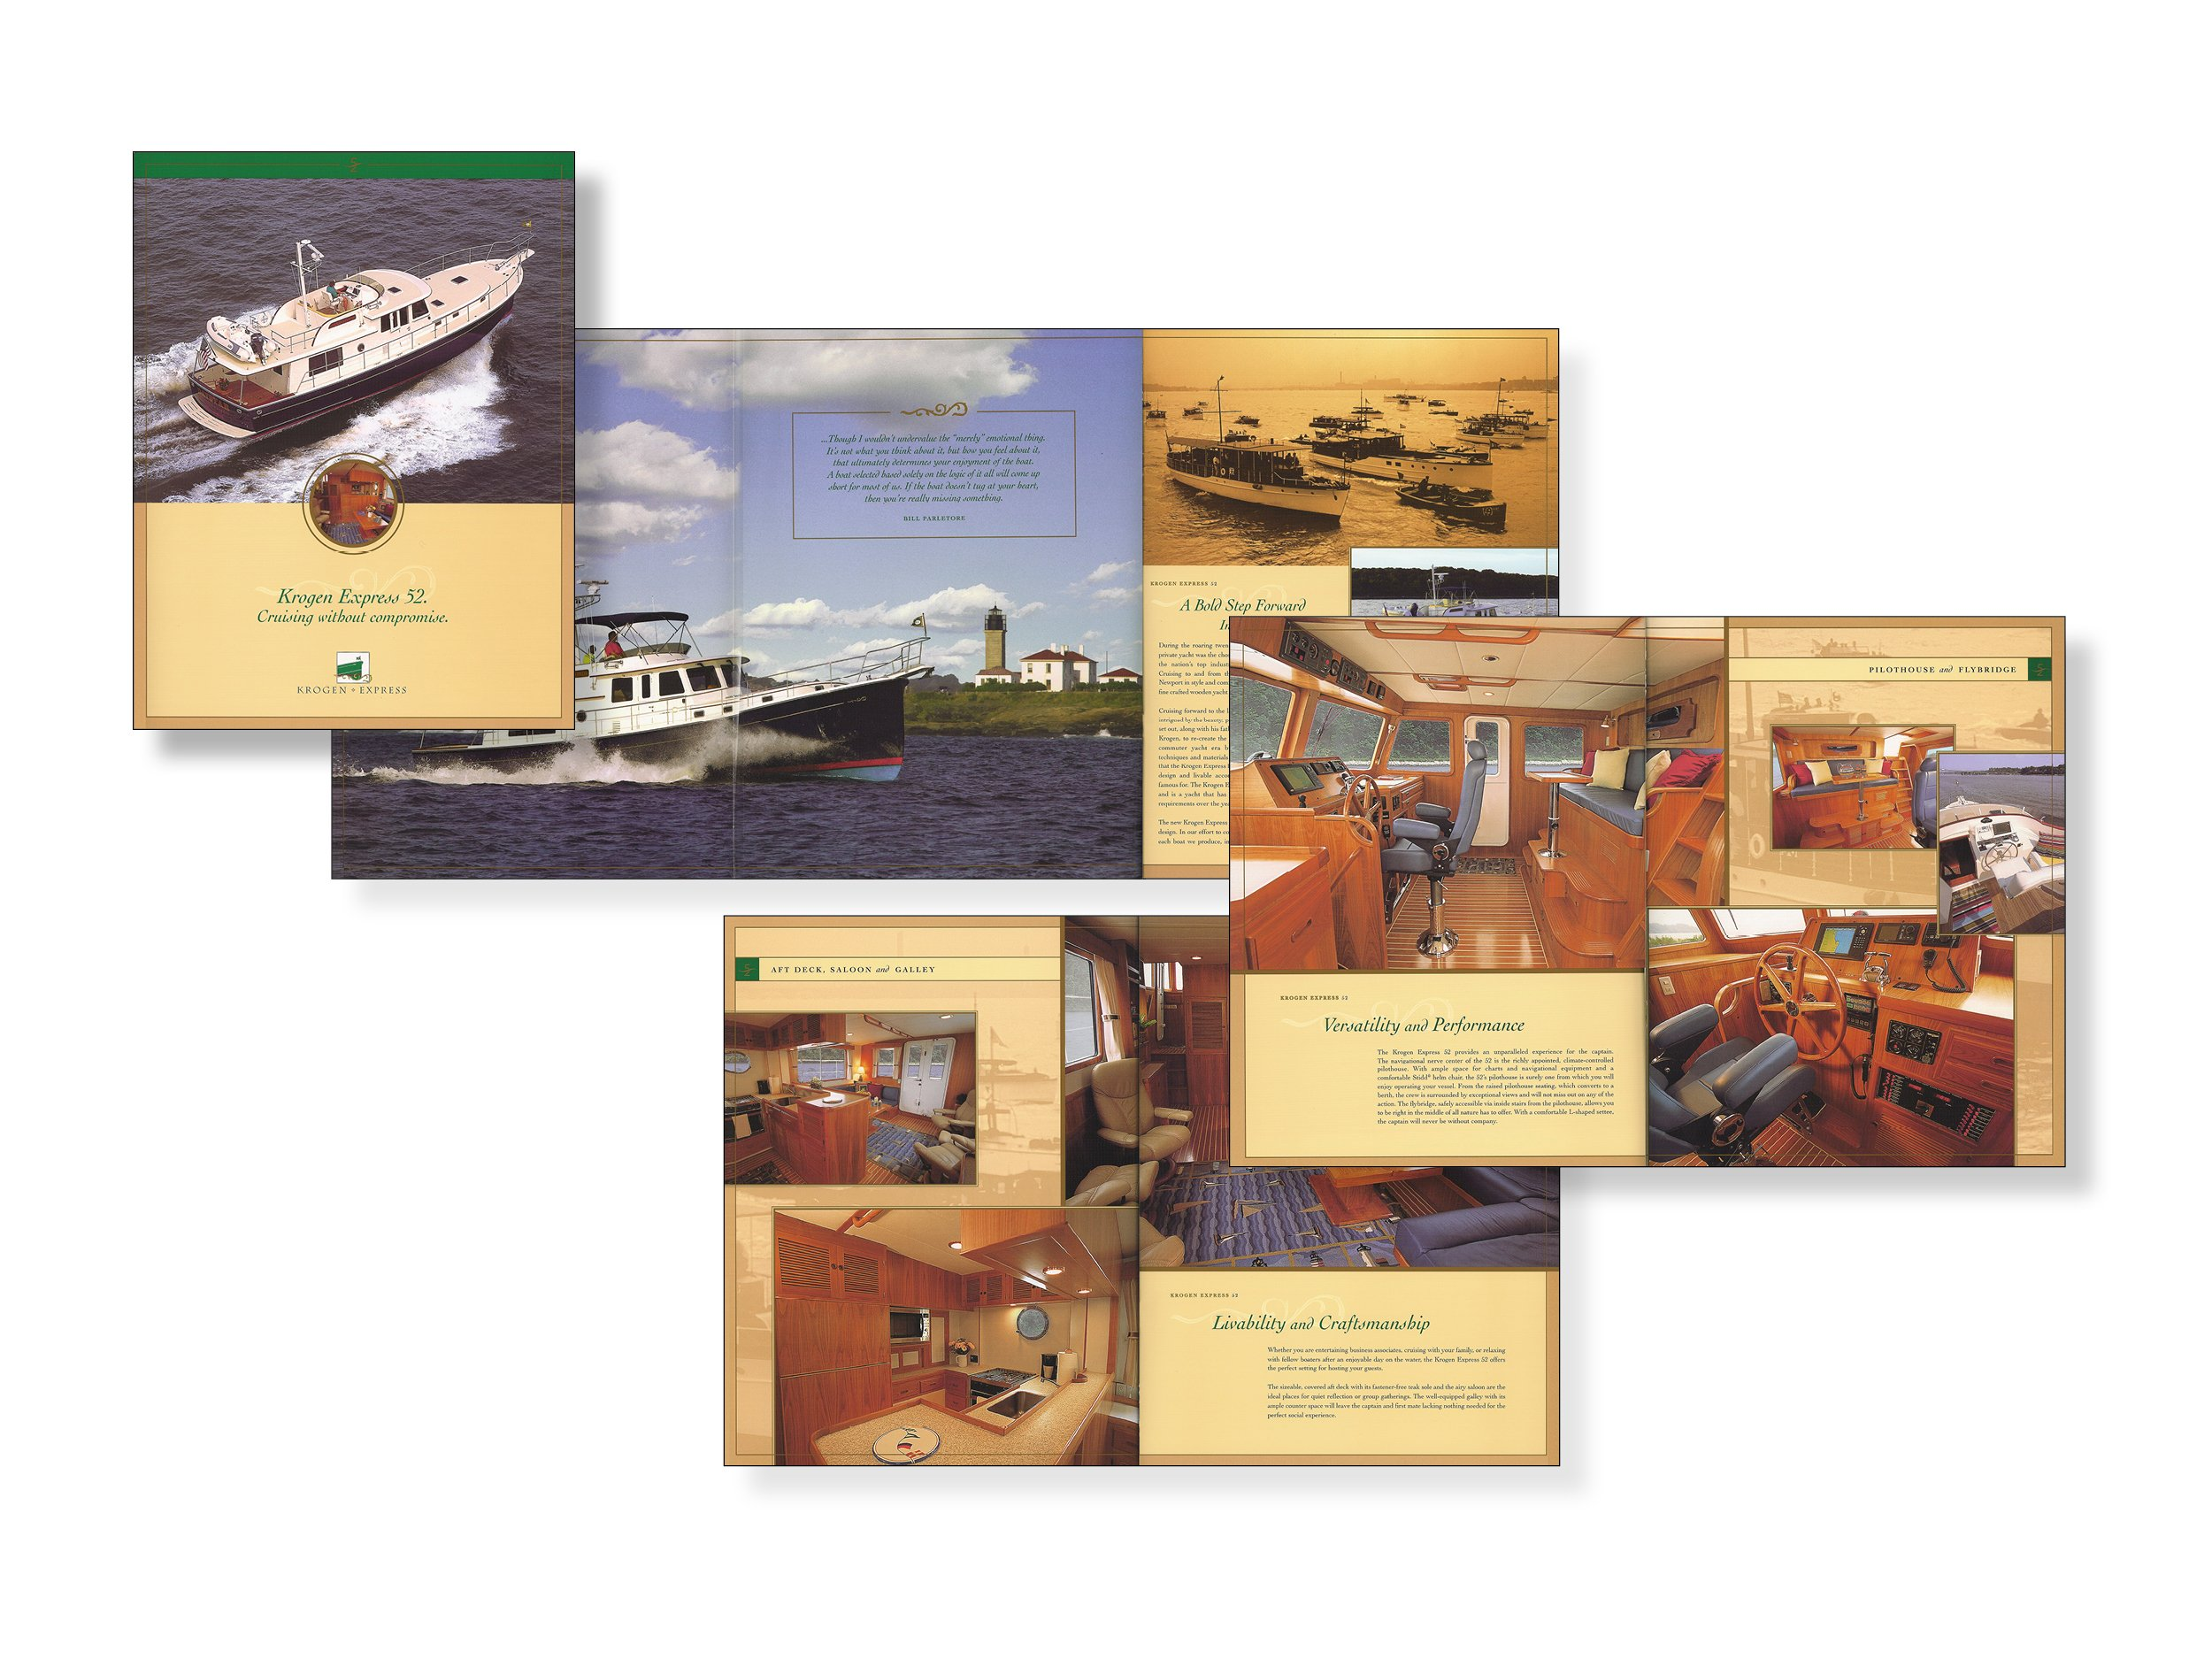 vortex-miami-marine-brochure-design